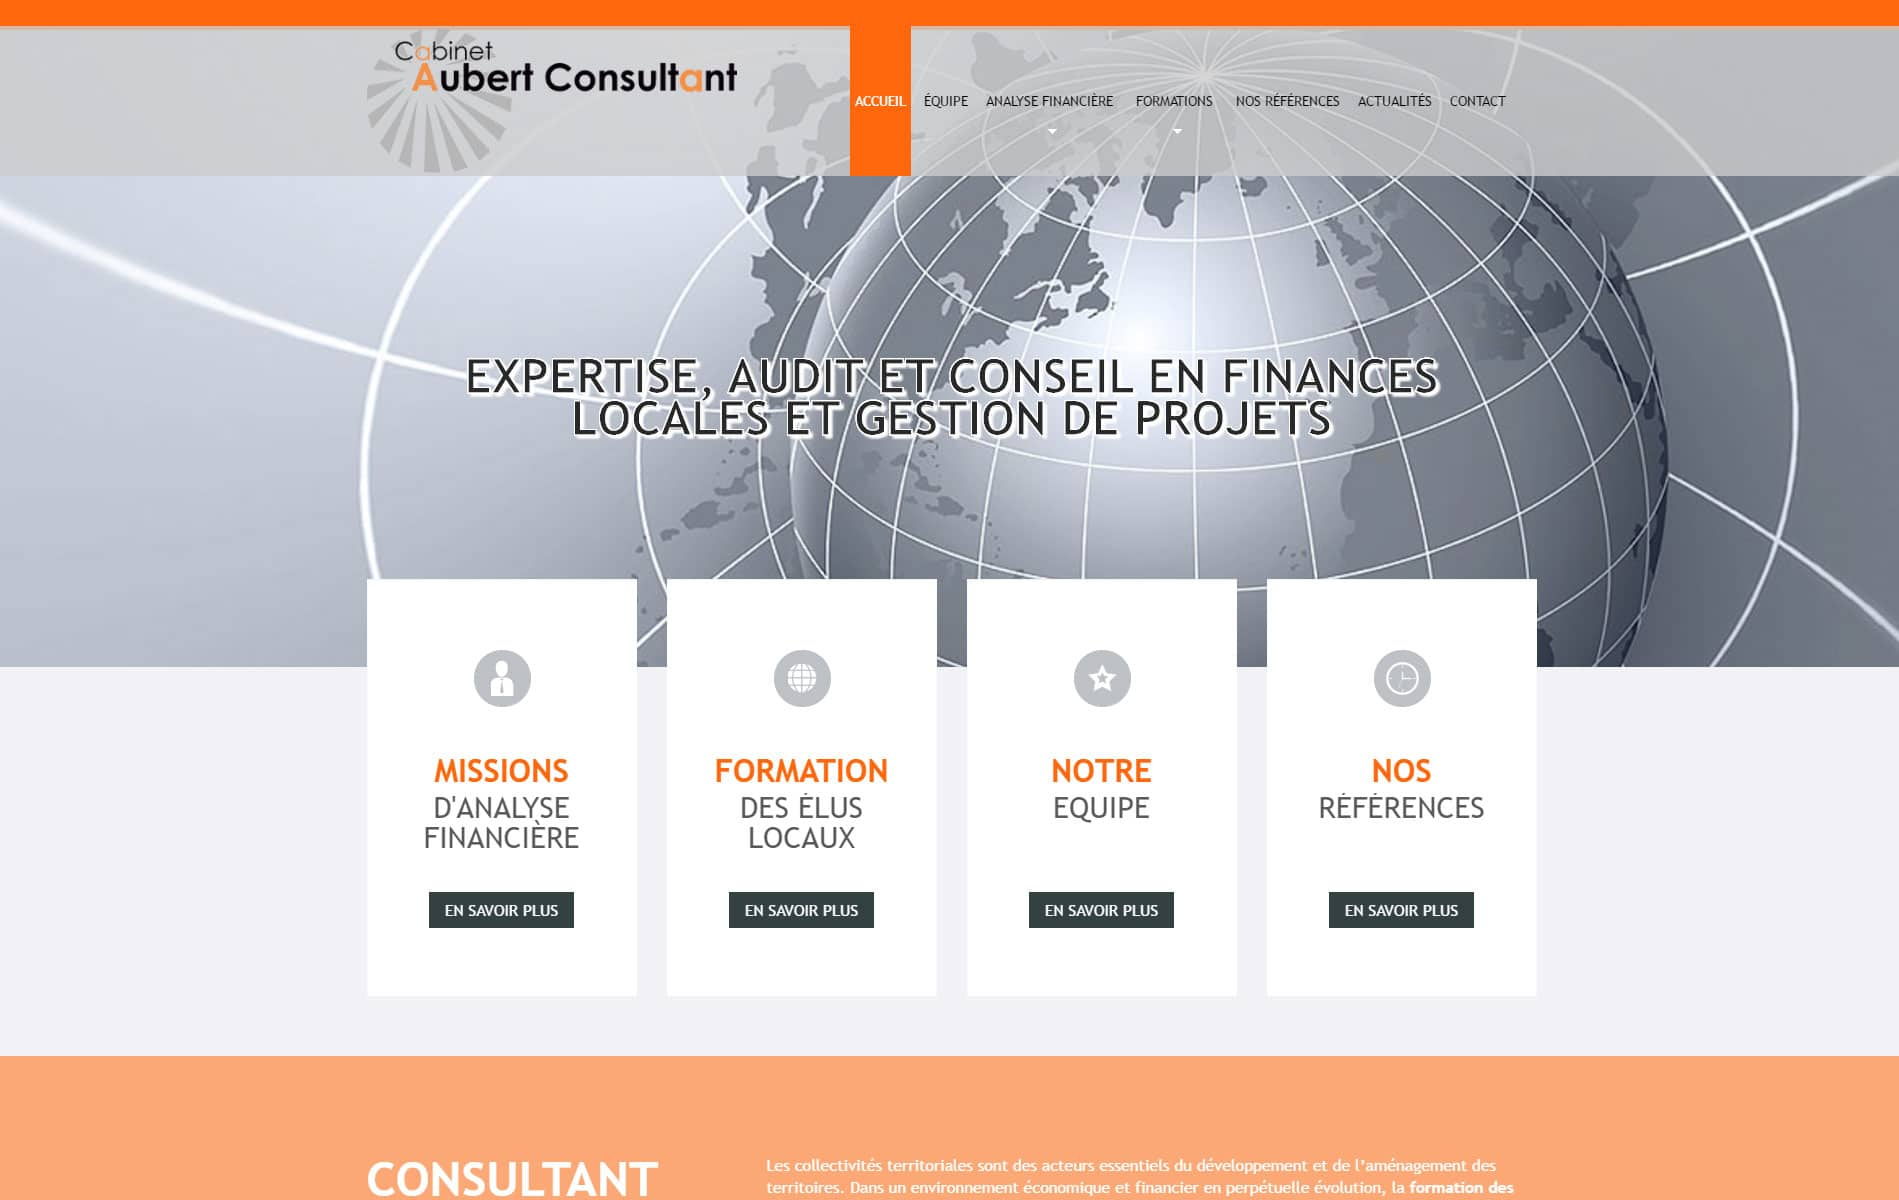 Aubert Consultant - expertiza, audit si consiliere financiara